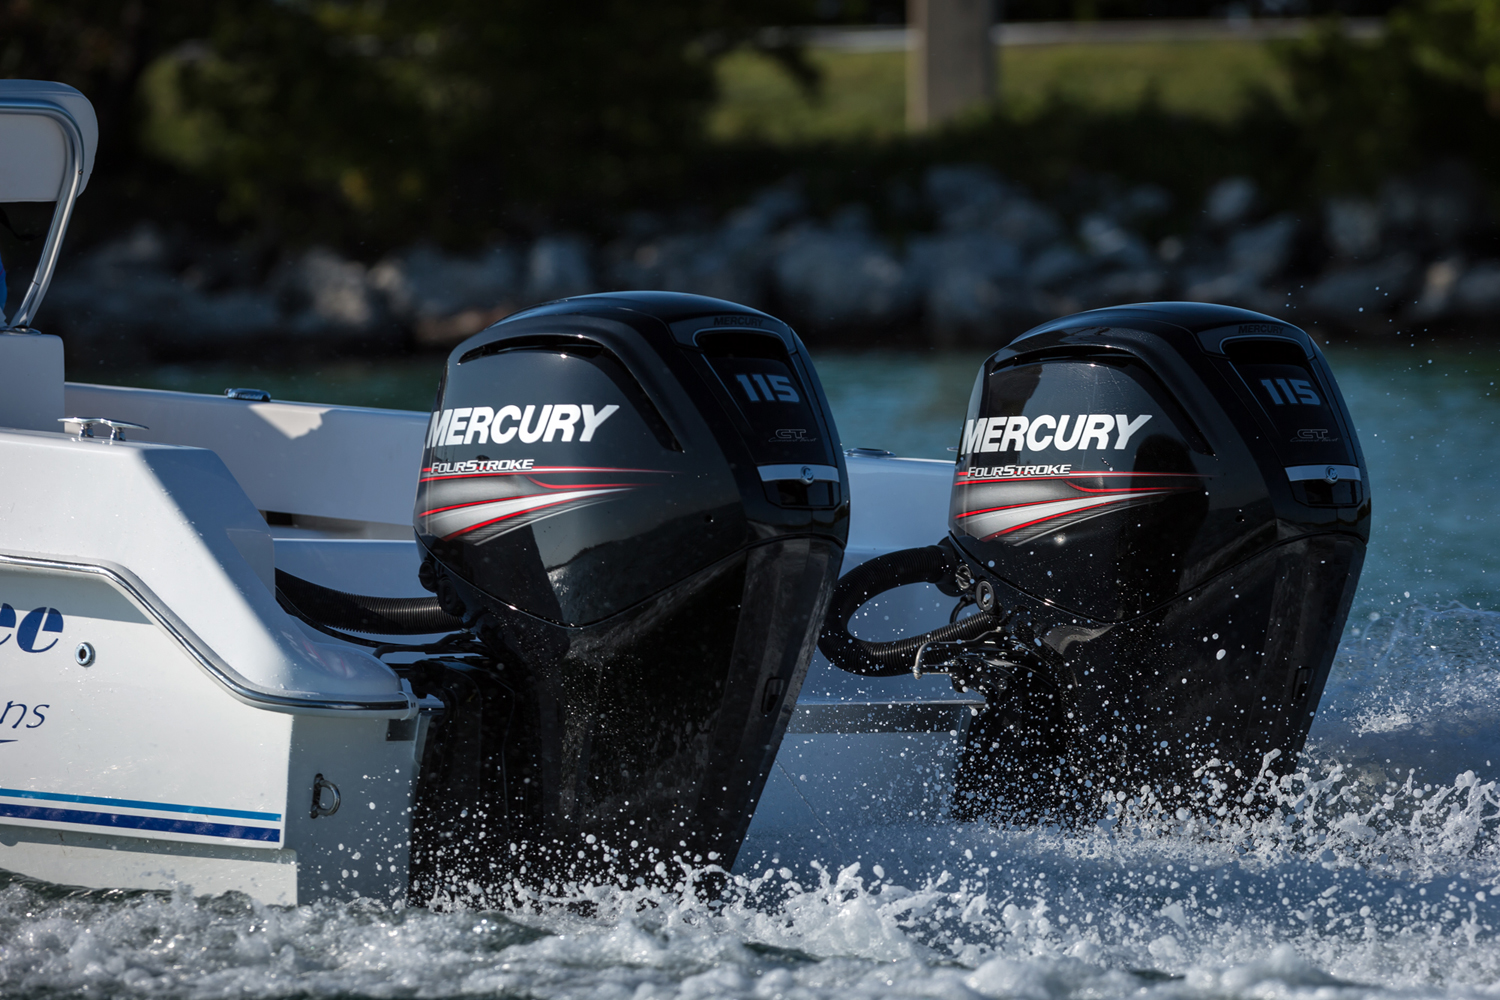 New Mercury 150 Fourstroke Outboard Debuts Boats Com